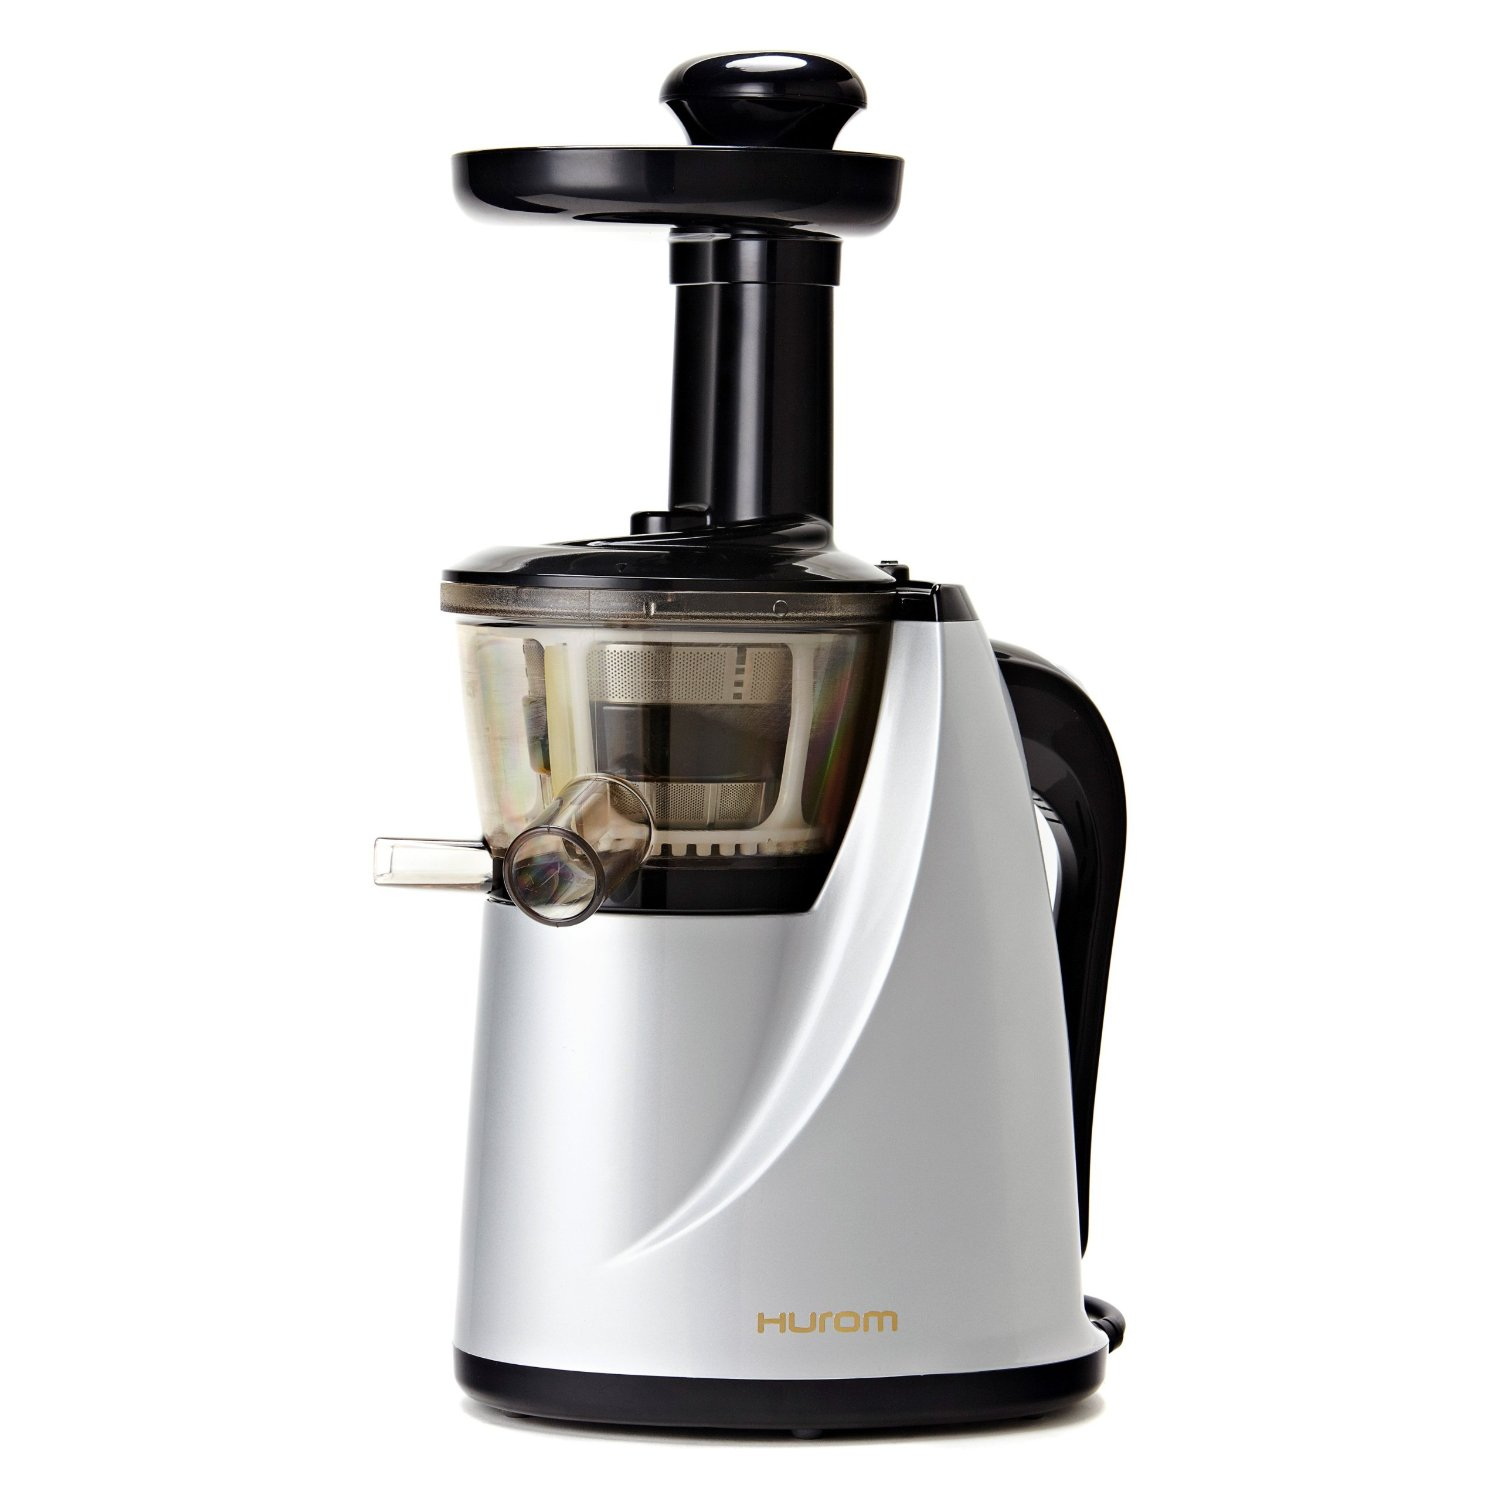 Hurom Slow Juicer Best Denki : Hurom HU-100 Masticating Slow Juicer Review - Best Cold Press Juicers